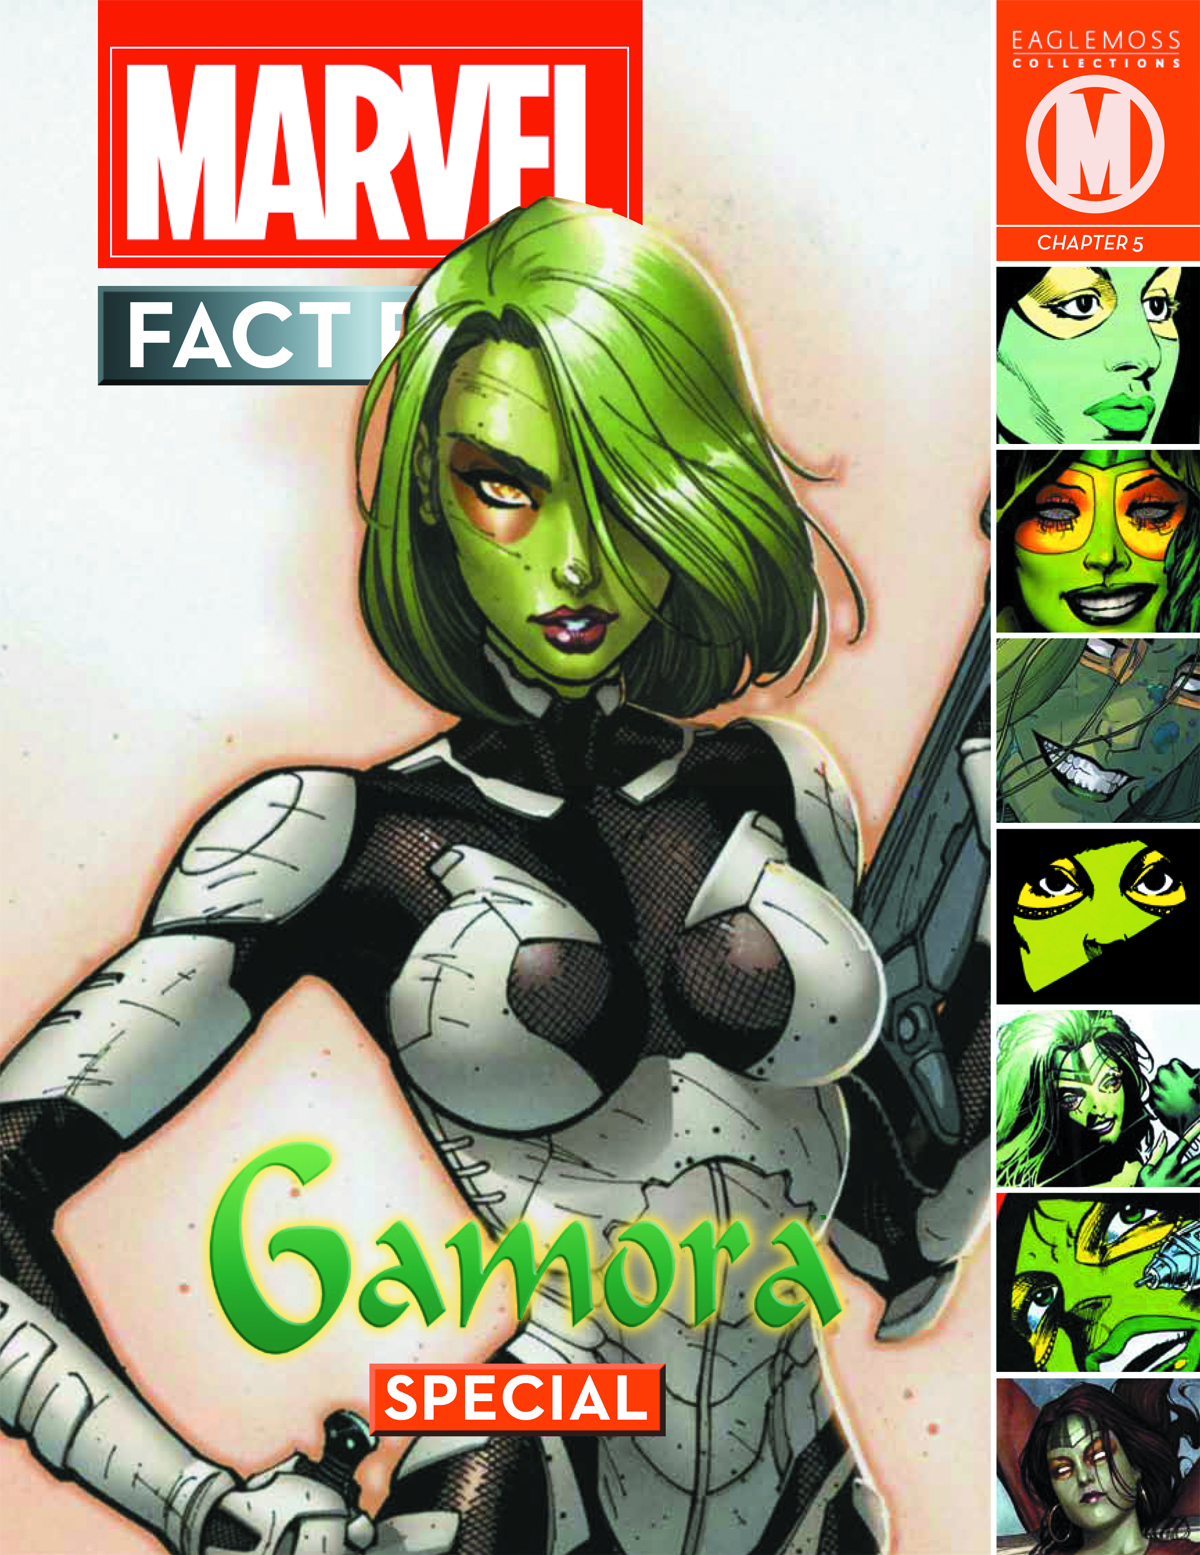 MARVEL FACT FILES COSMIC SPECIAL #4 GAMORA